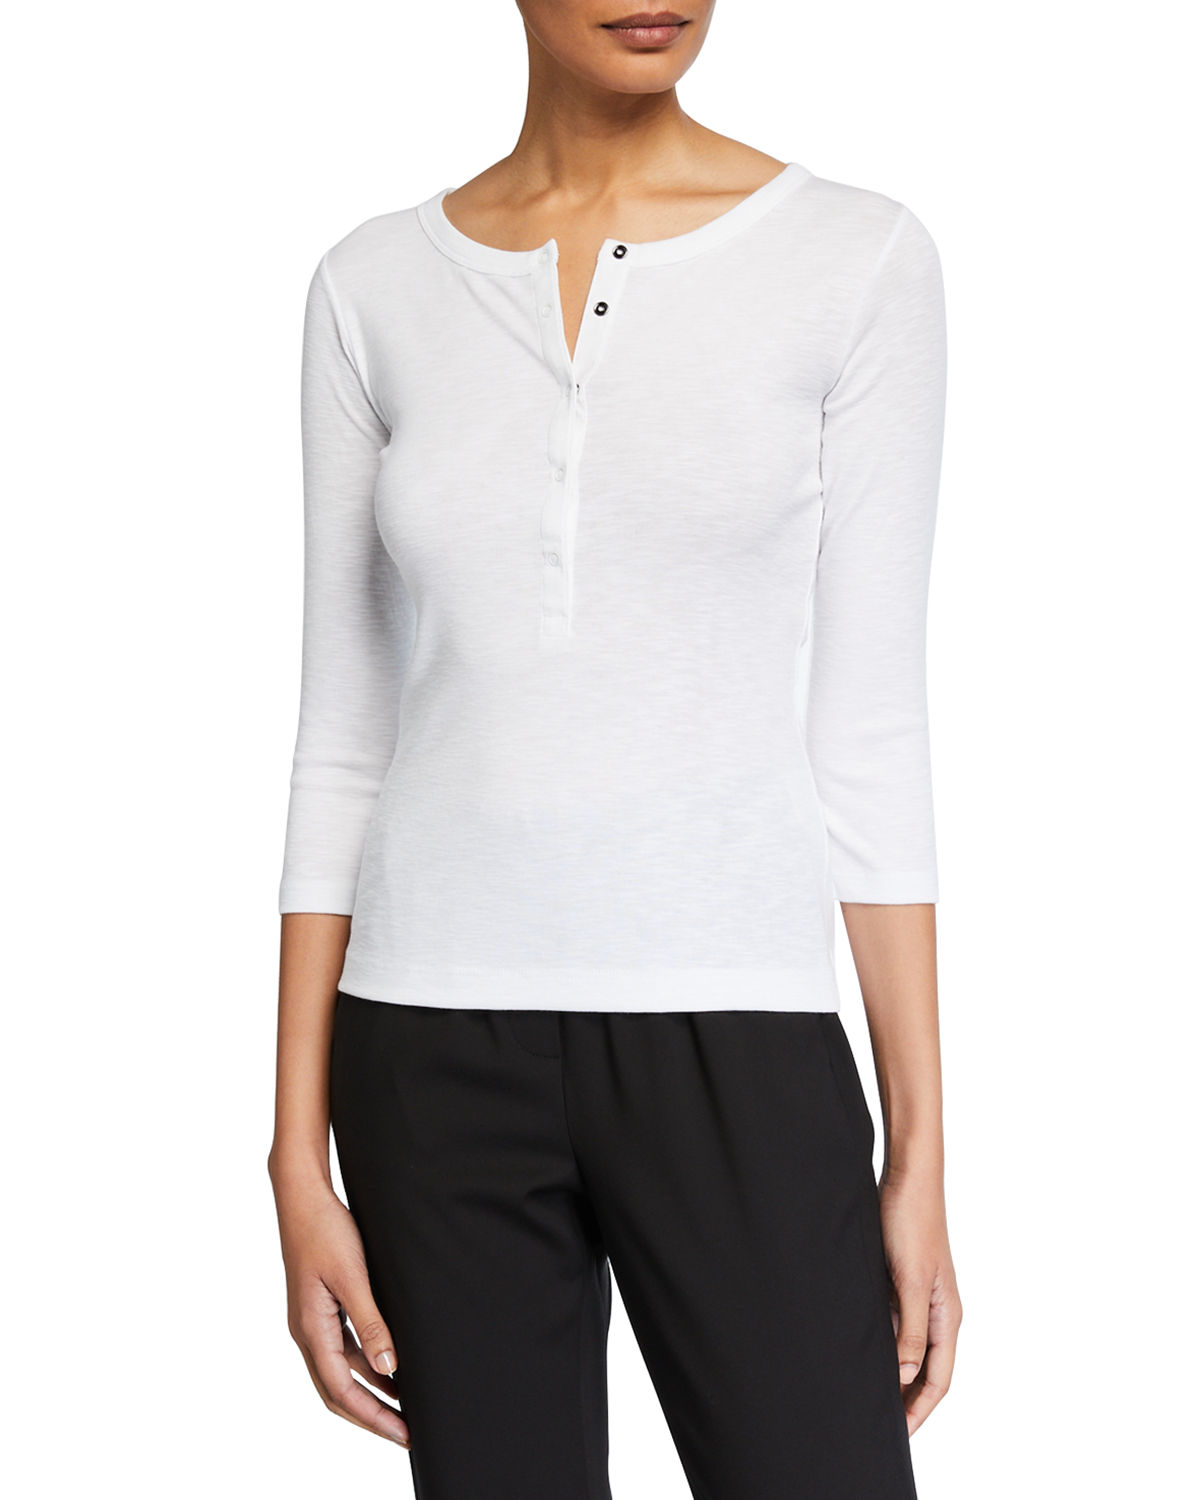 Vince Tops 3/4-Sleeve Henley Top, WHITE